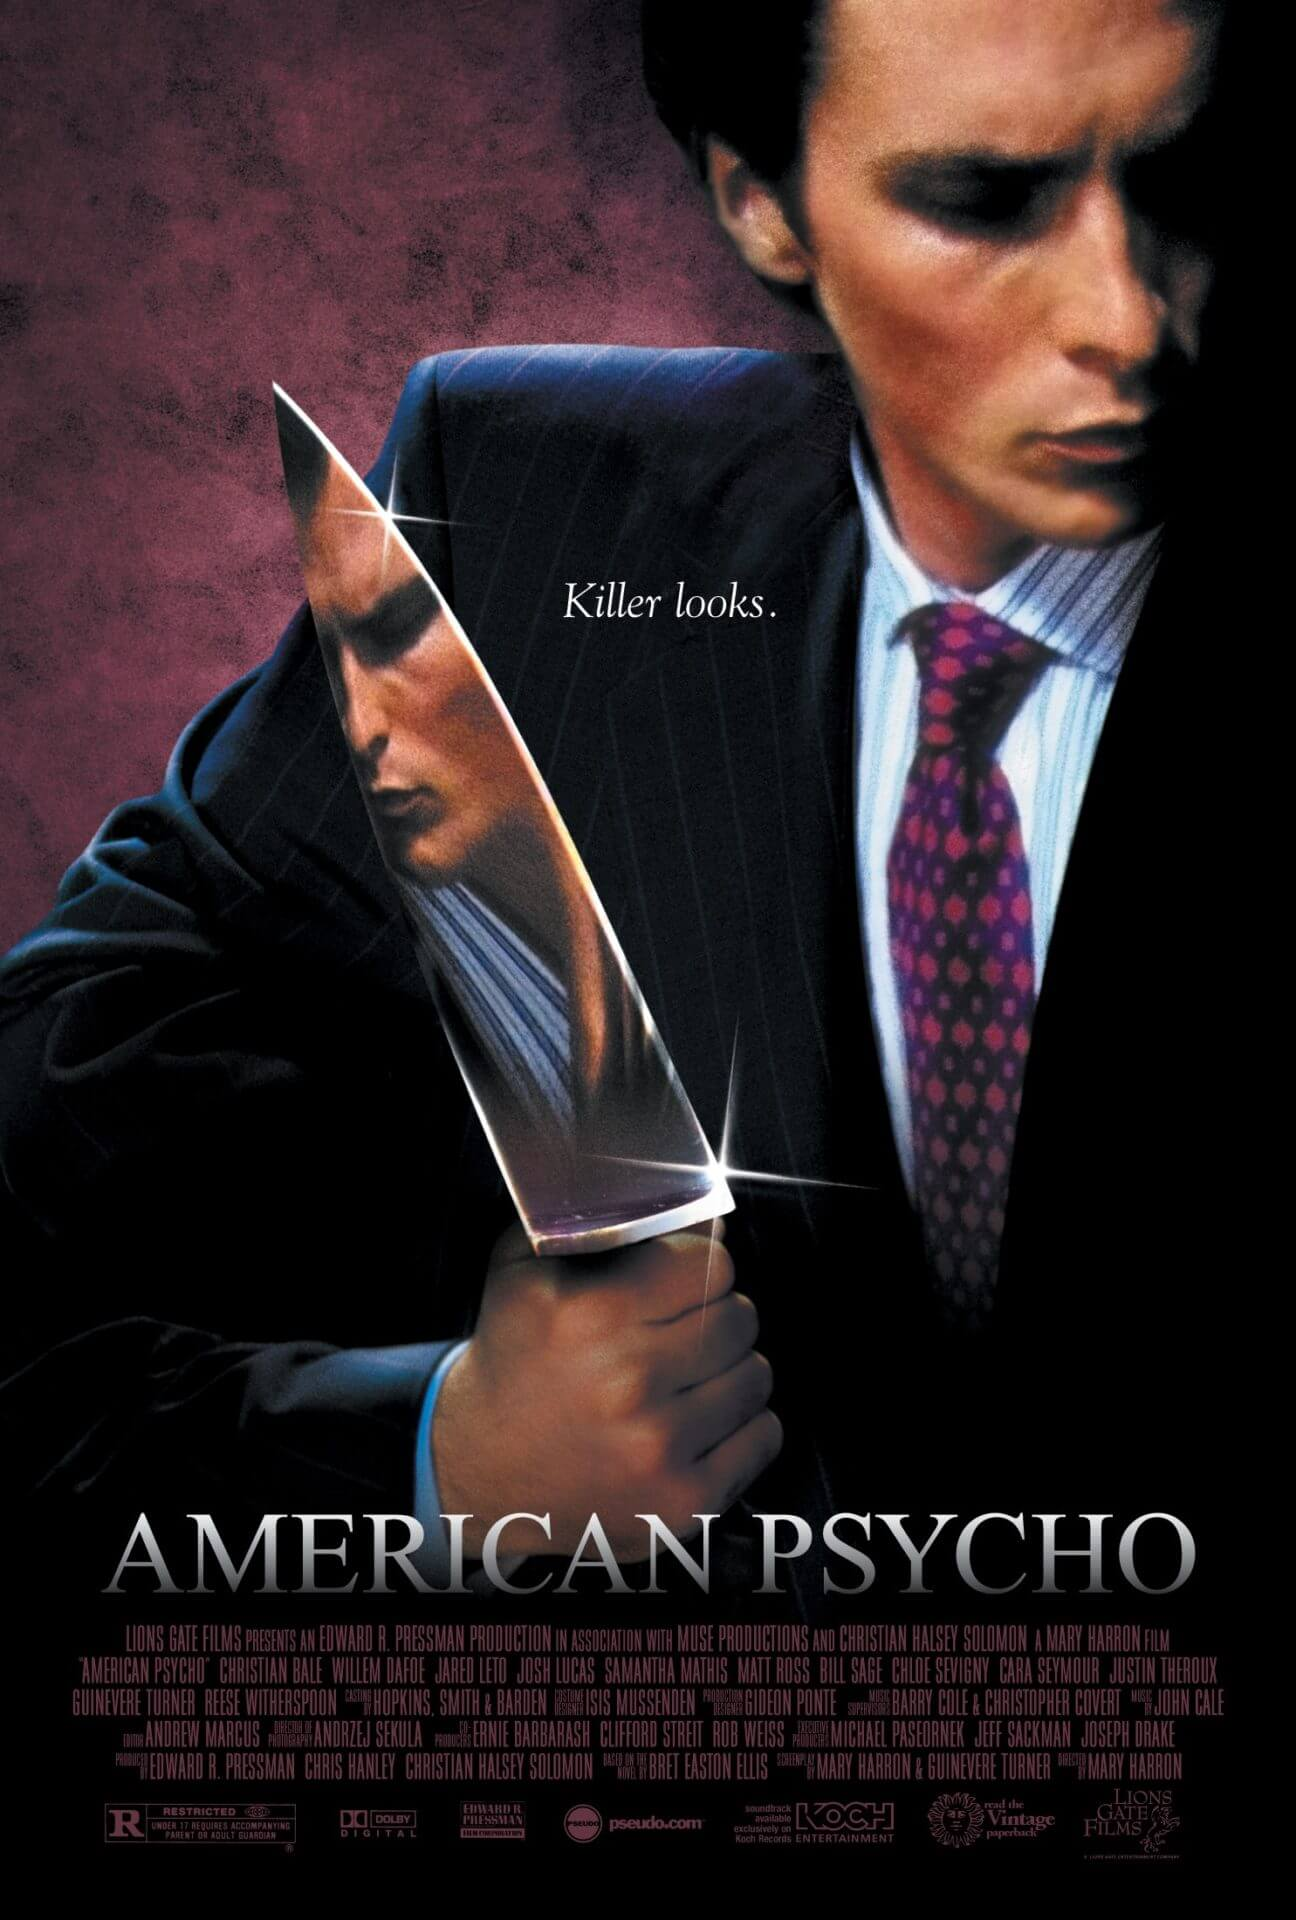 psycho movie poster analysis essay psycho essays and papers